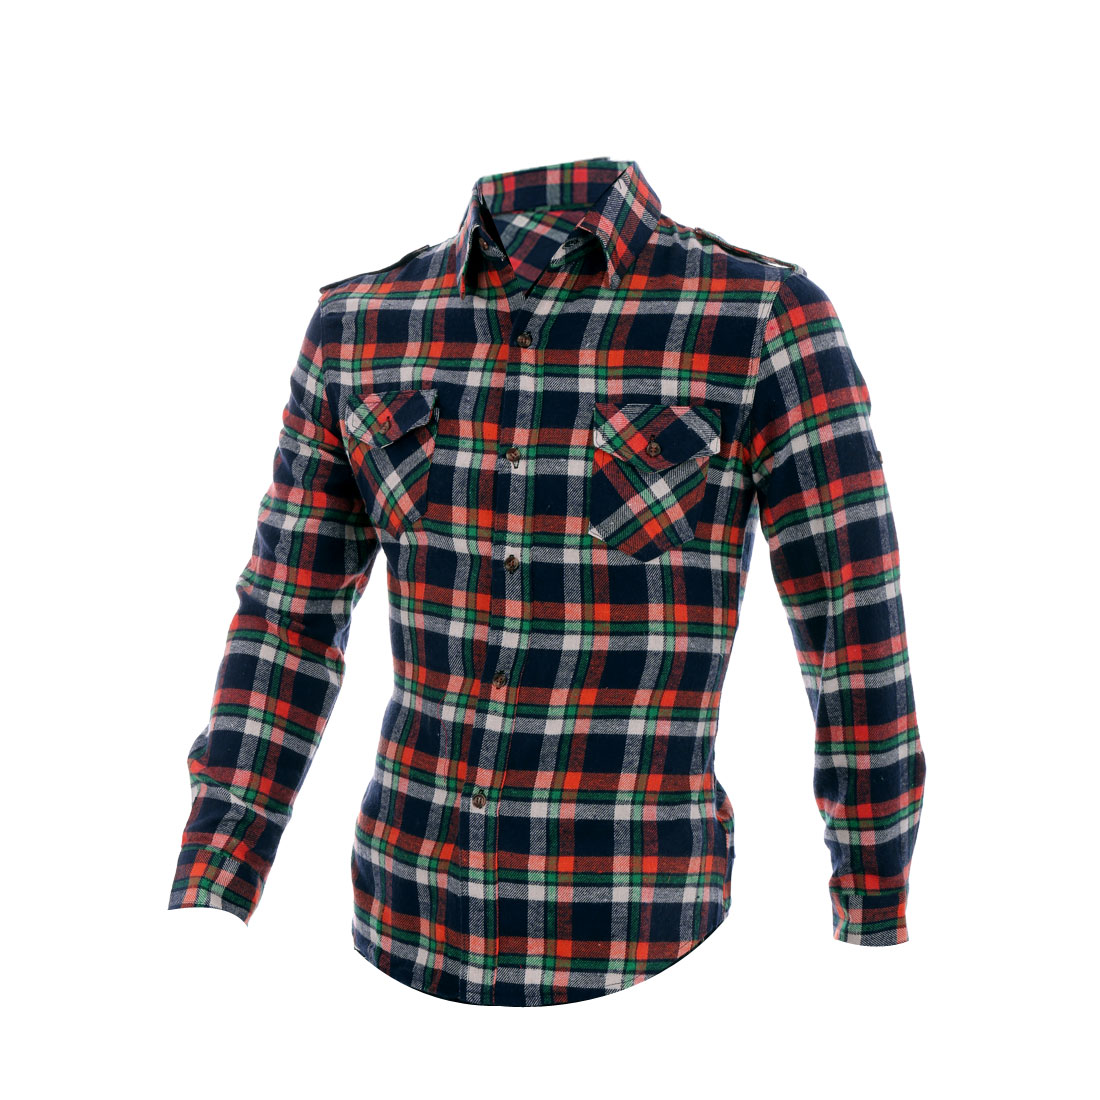 Men Flat Pockets Button Closure Point Collar Navy Blue Orange Plaid Shirt M